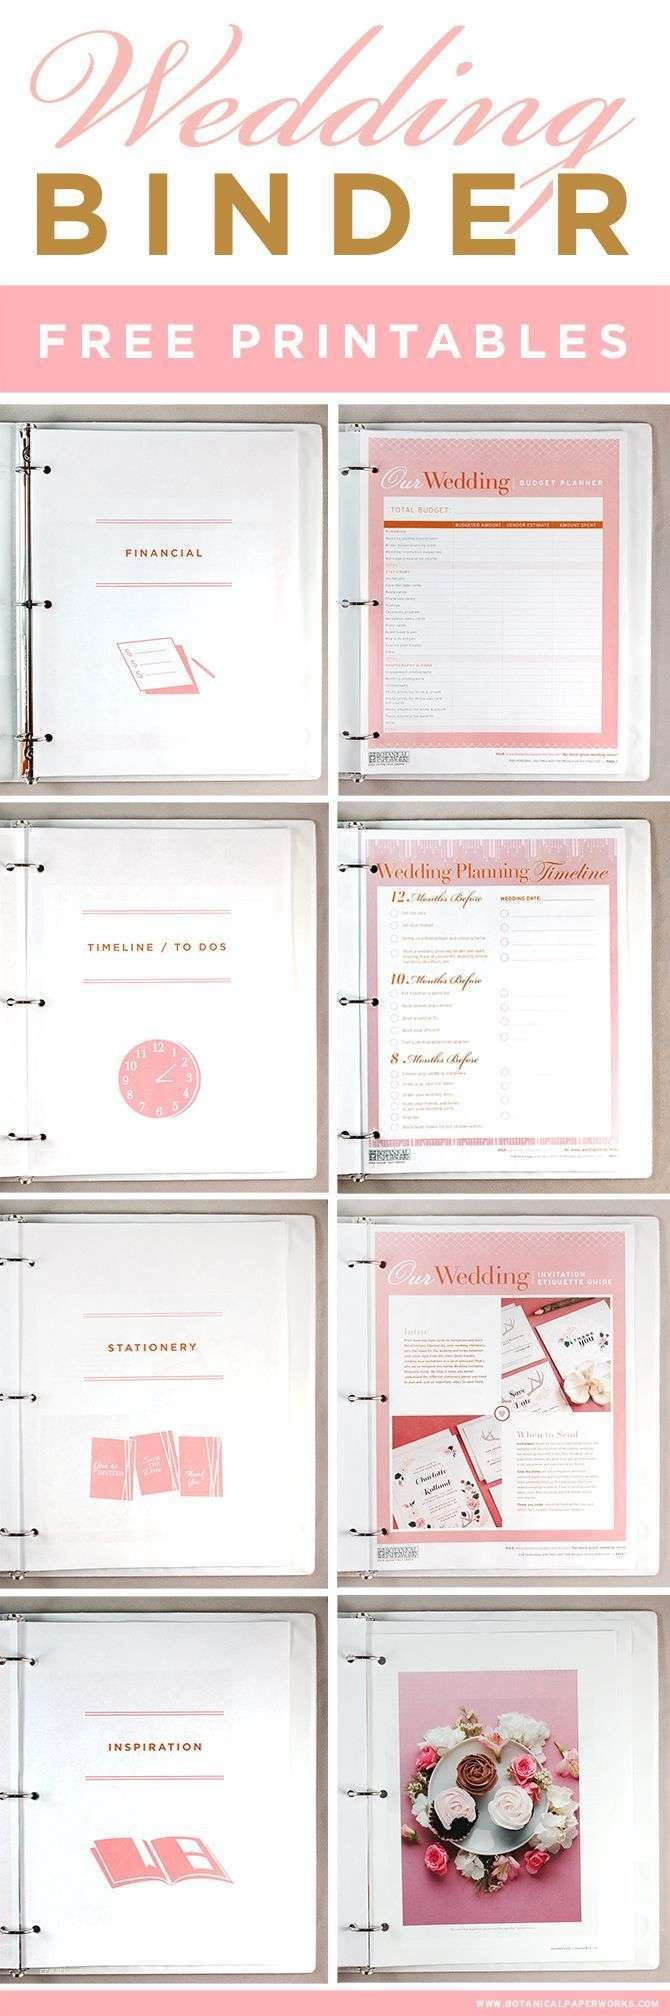 Wedding Budget Checklist Pdf - New Wedding Budget Checklist Pdf, Planning A Wedding Checklist Wedding Dress Decoration